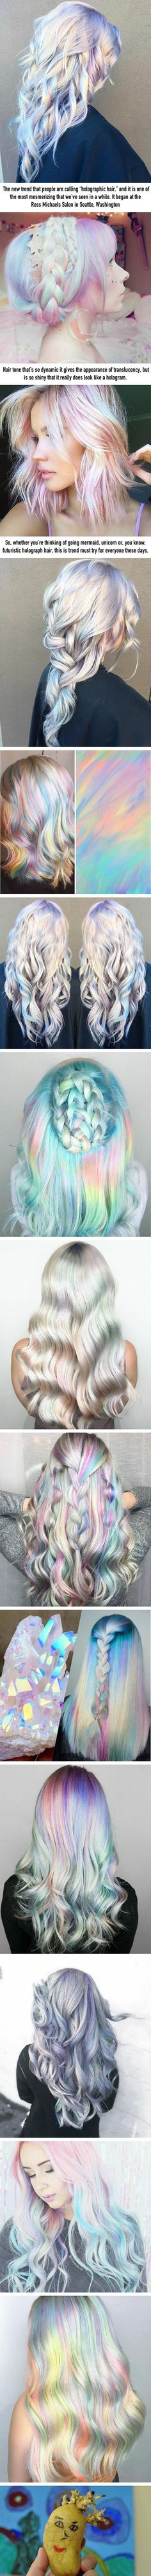 Holographic Hair Is the Fairidescent Dye Trend We've Been Waiting For #HairDye